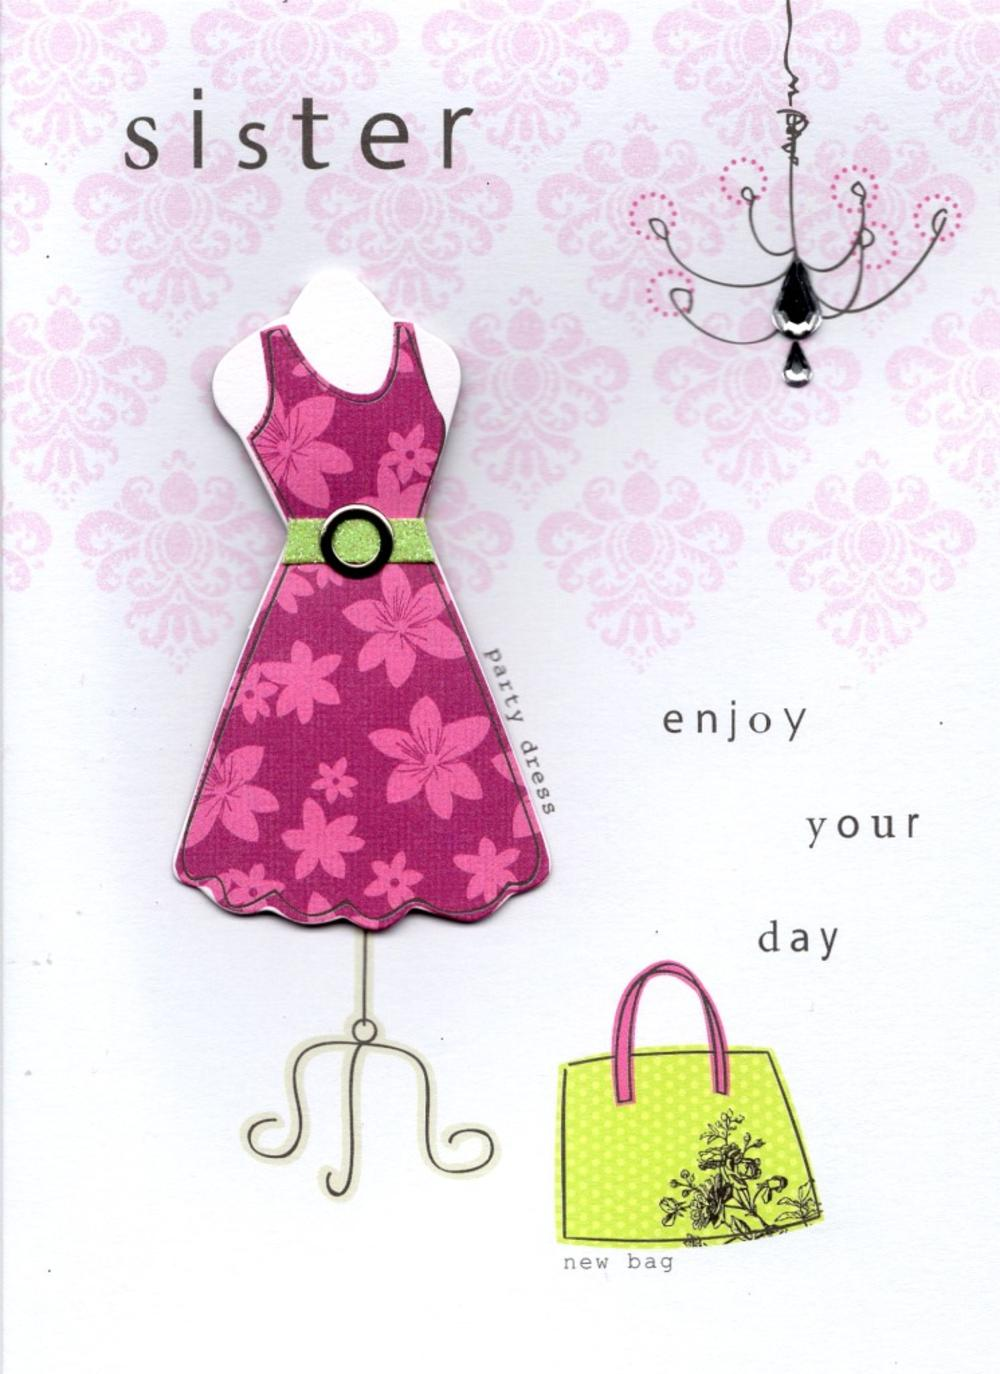 Sister pretty dress handmade happy birthday card cards love kates sister pretty dress handmade happy birthday card m4hsunfo